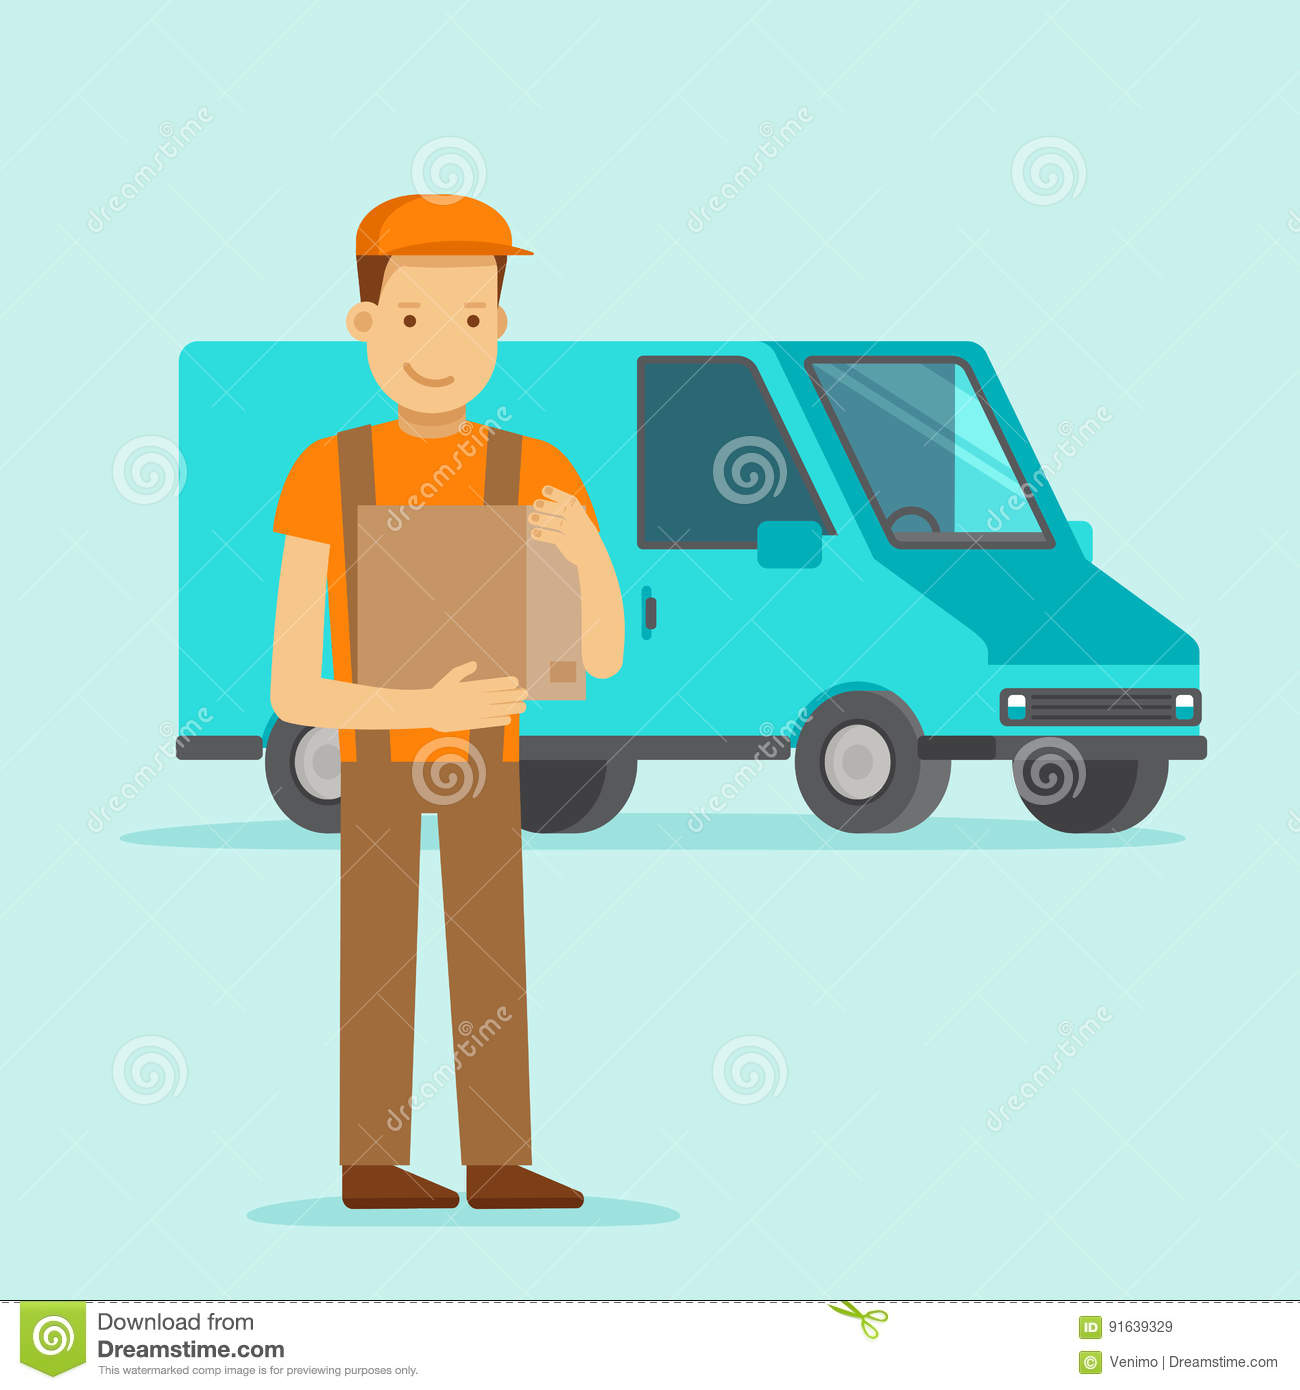 cf527cdba13 Vector illustration in flat style - delivery concept - truck and friendly  man with box from internet shop - fast shipping